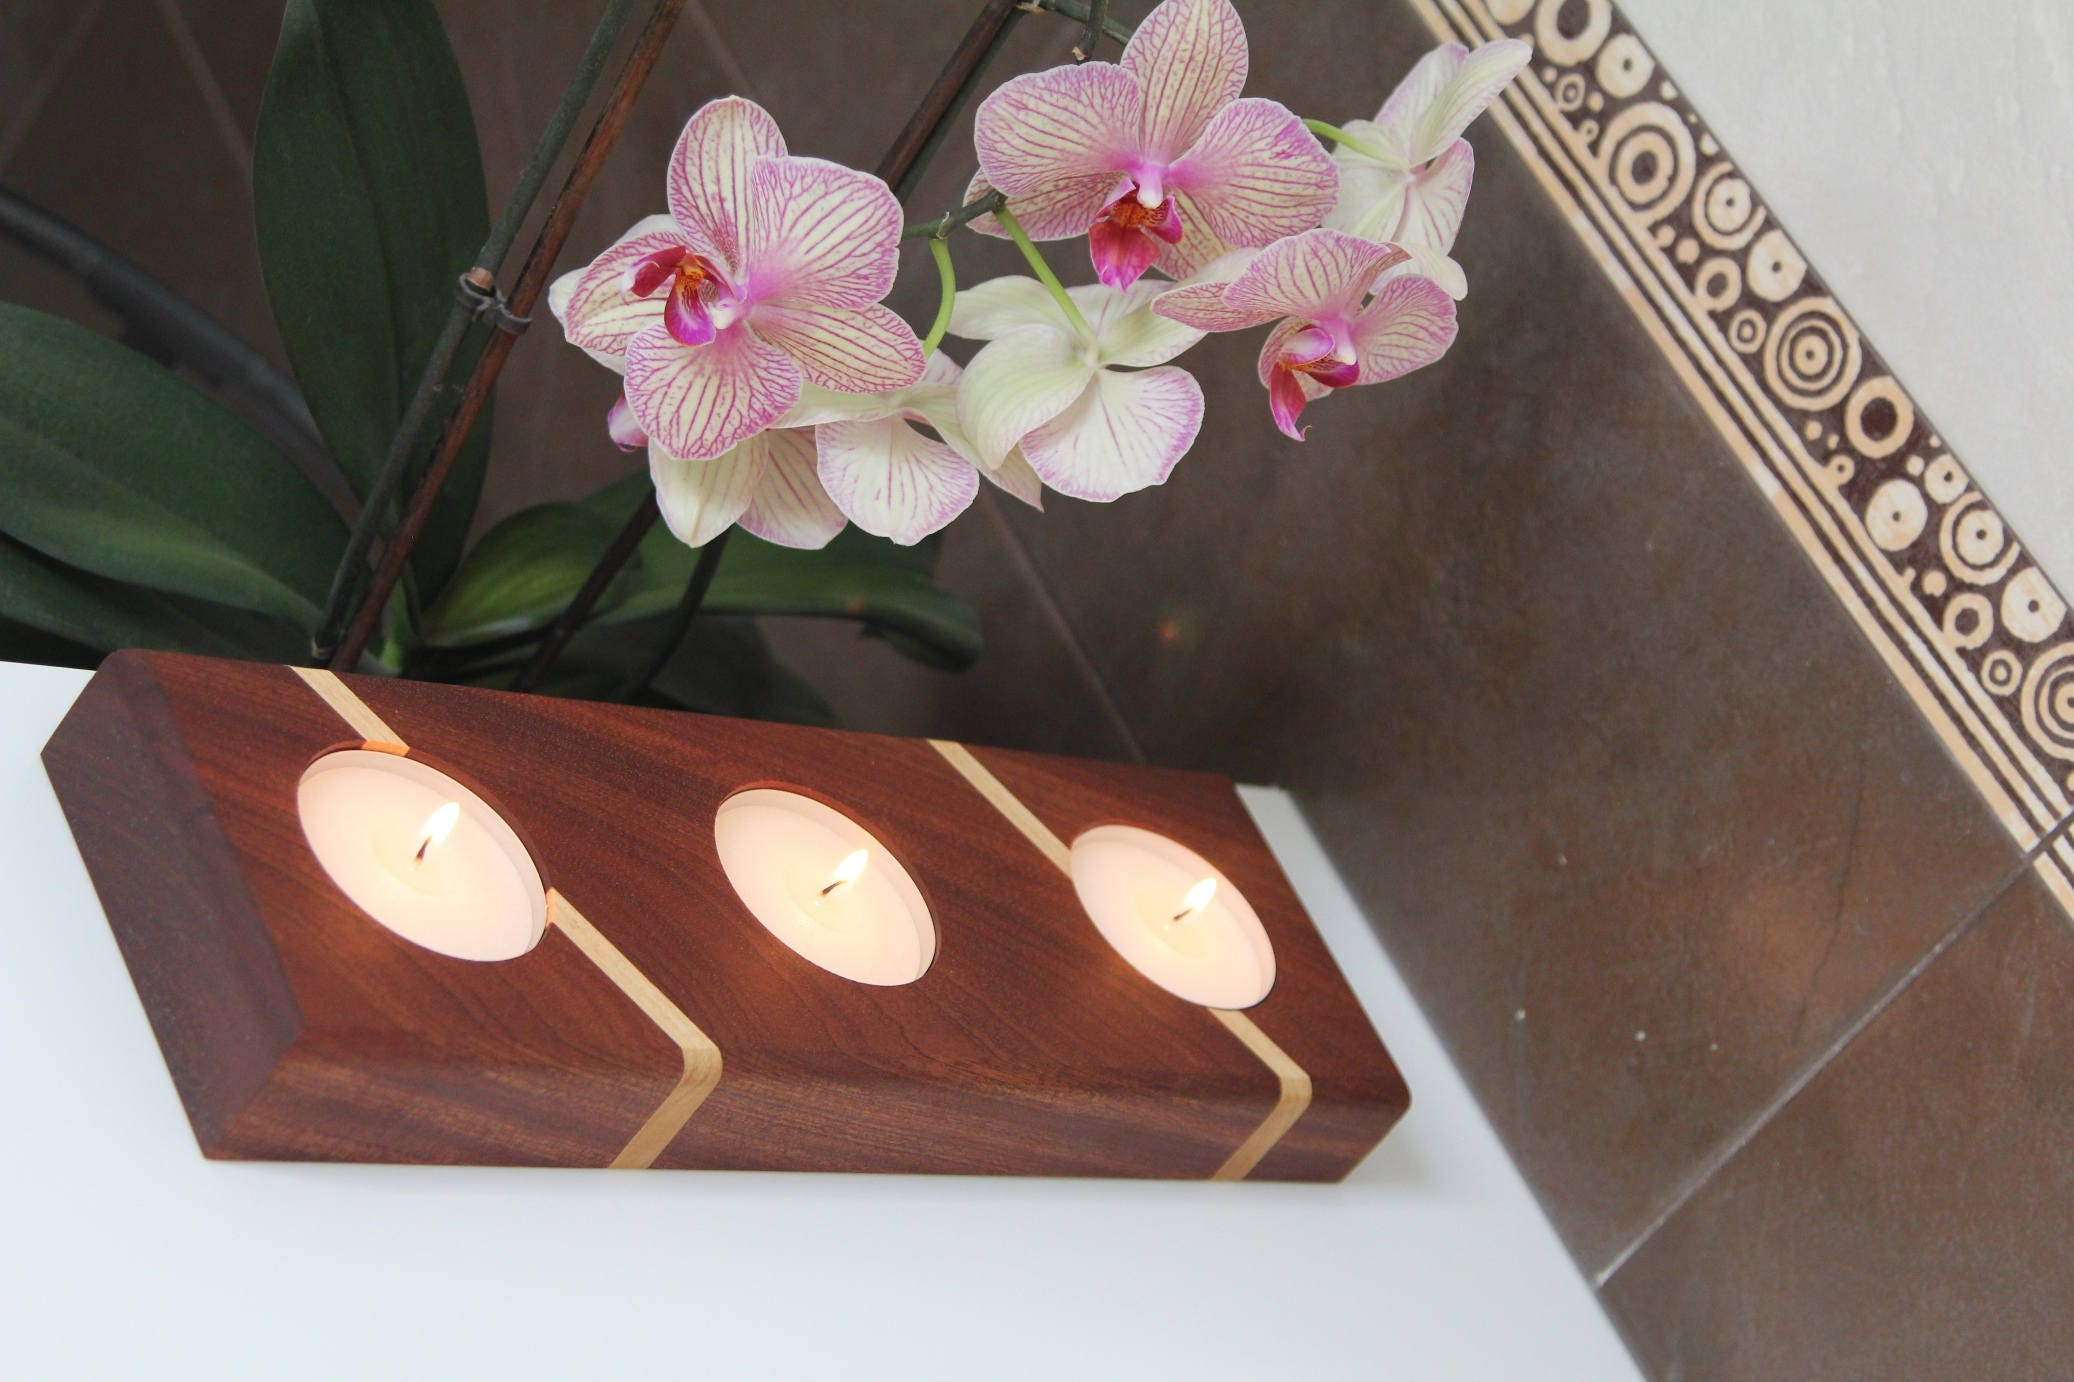 Candle Holder Candles Centerpiece Tea Light Anniversary Gift Birthday